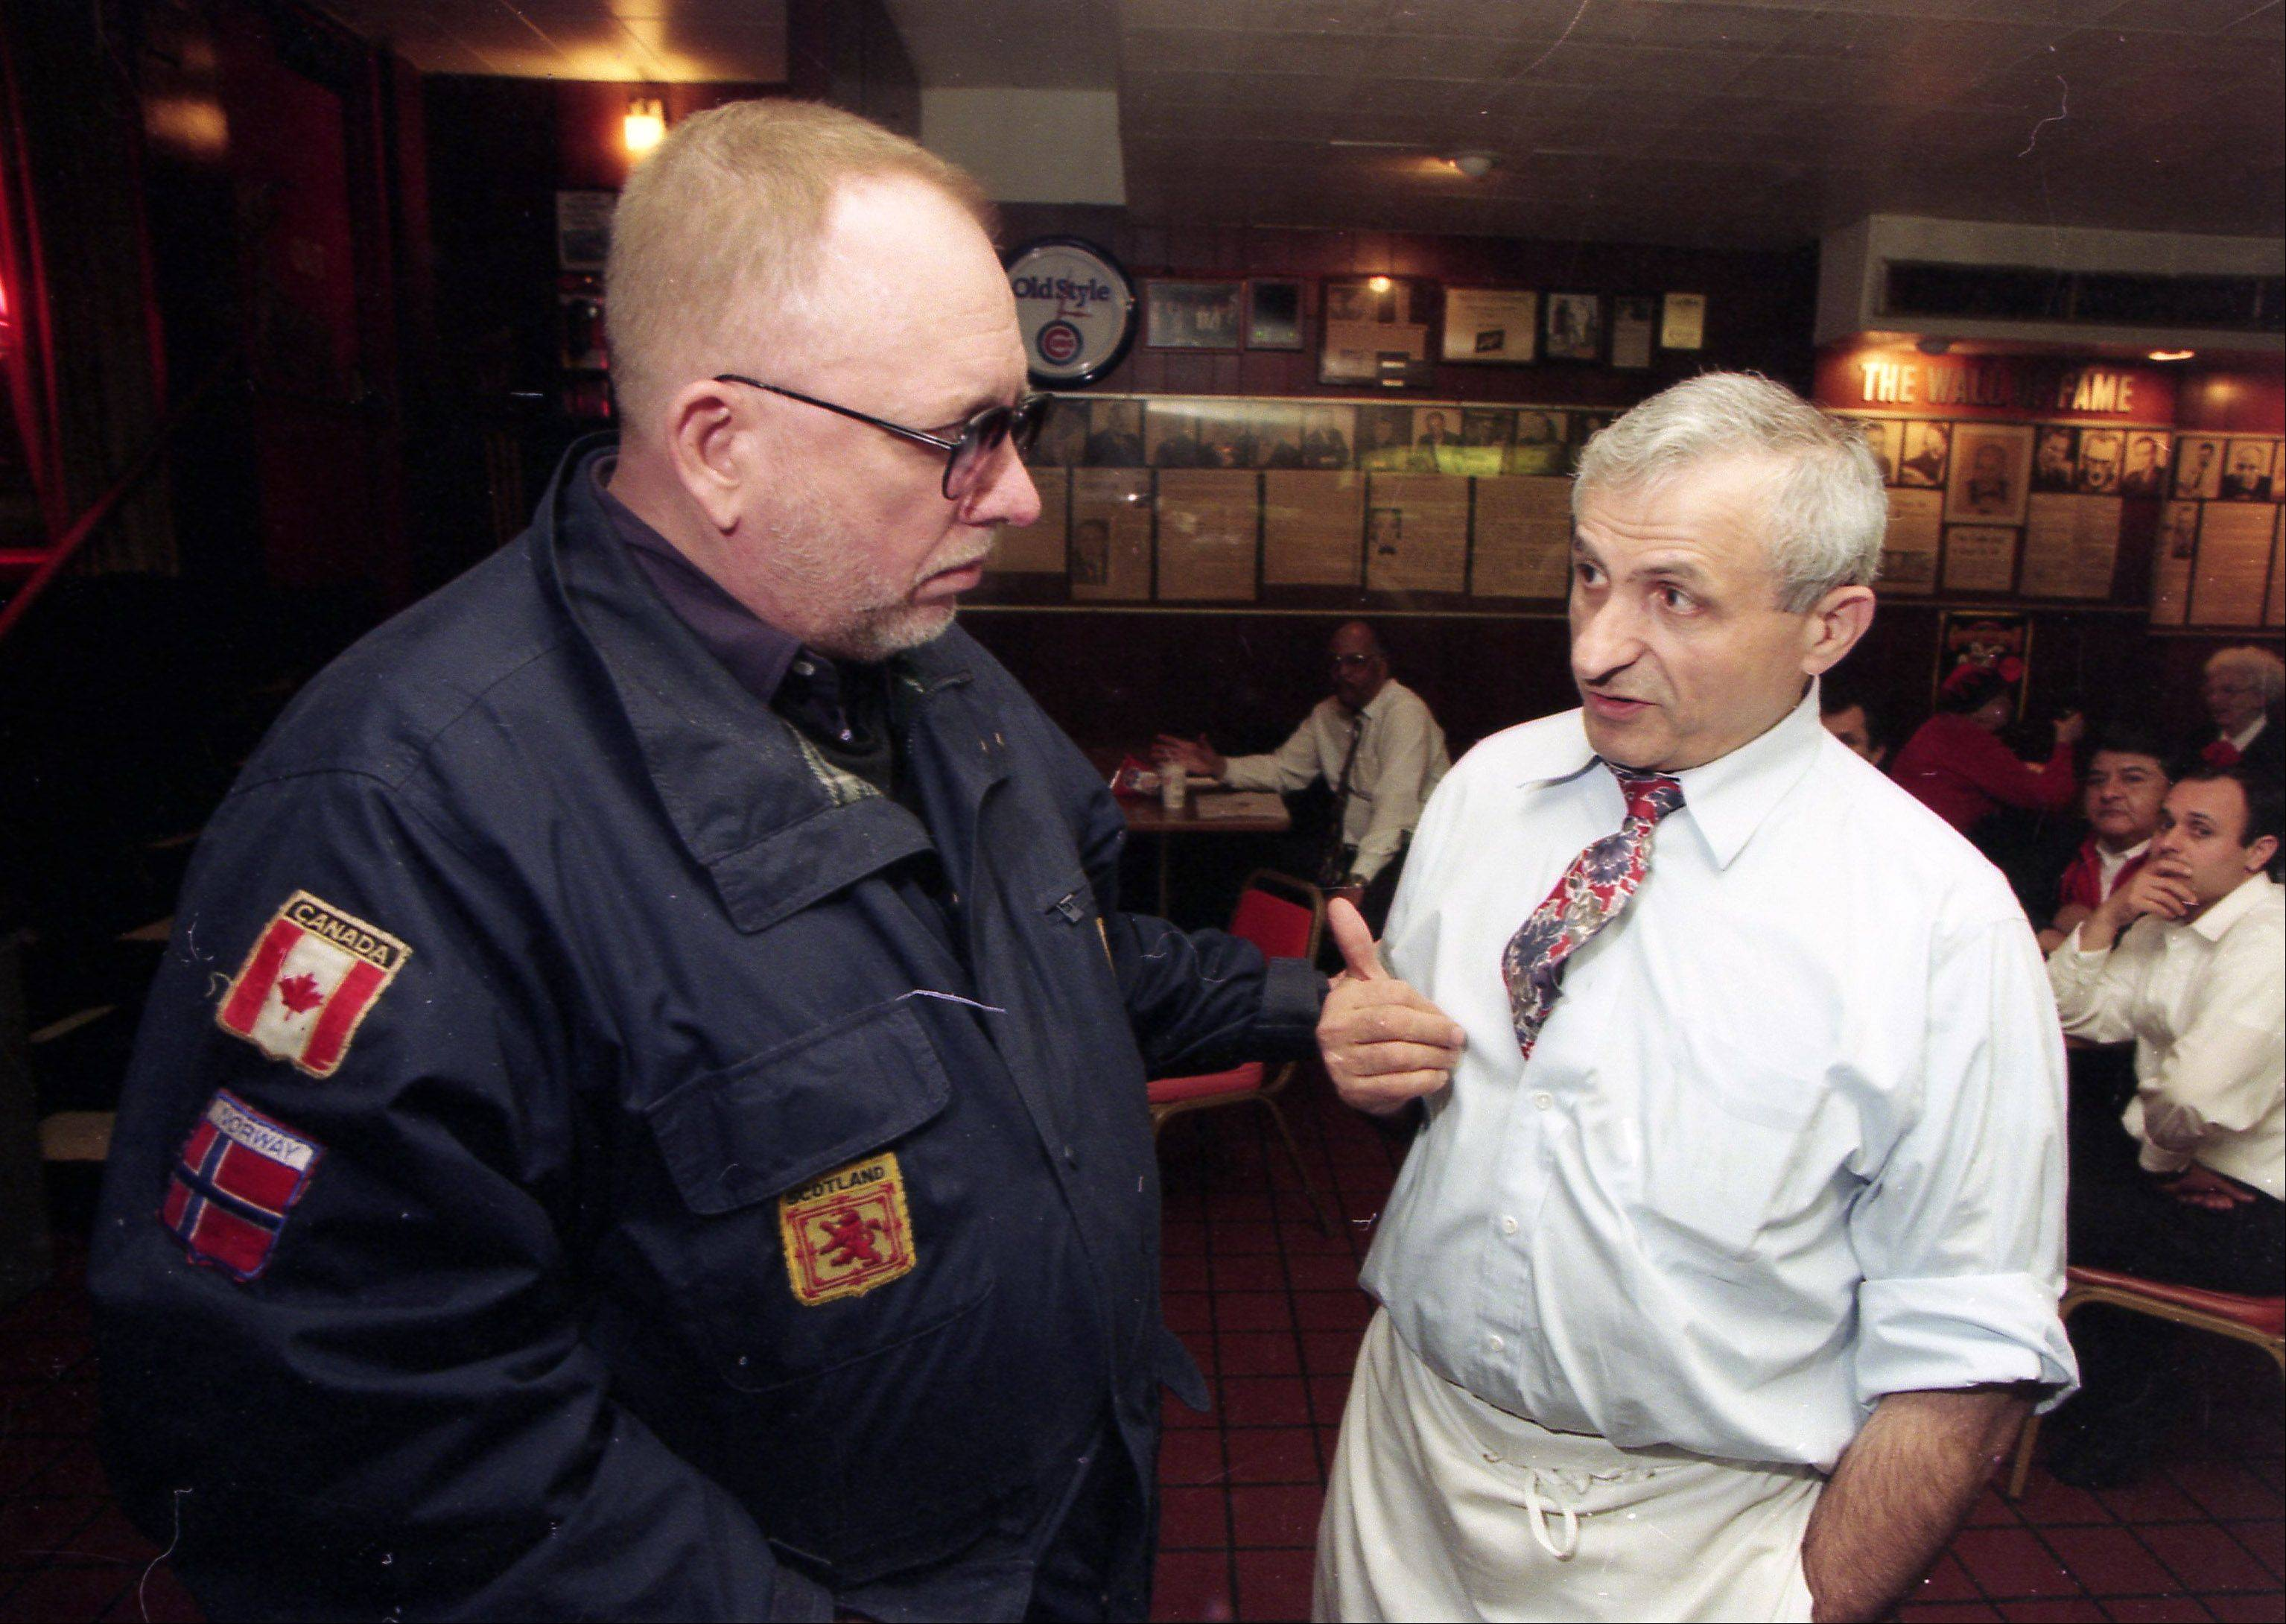 Bill Granger, left, talks with Sam Sianis, owner of the Billy Goat Tavern in Chicago, in 1997.